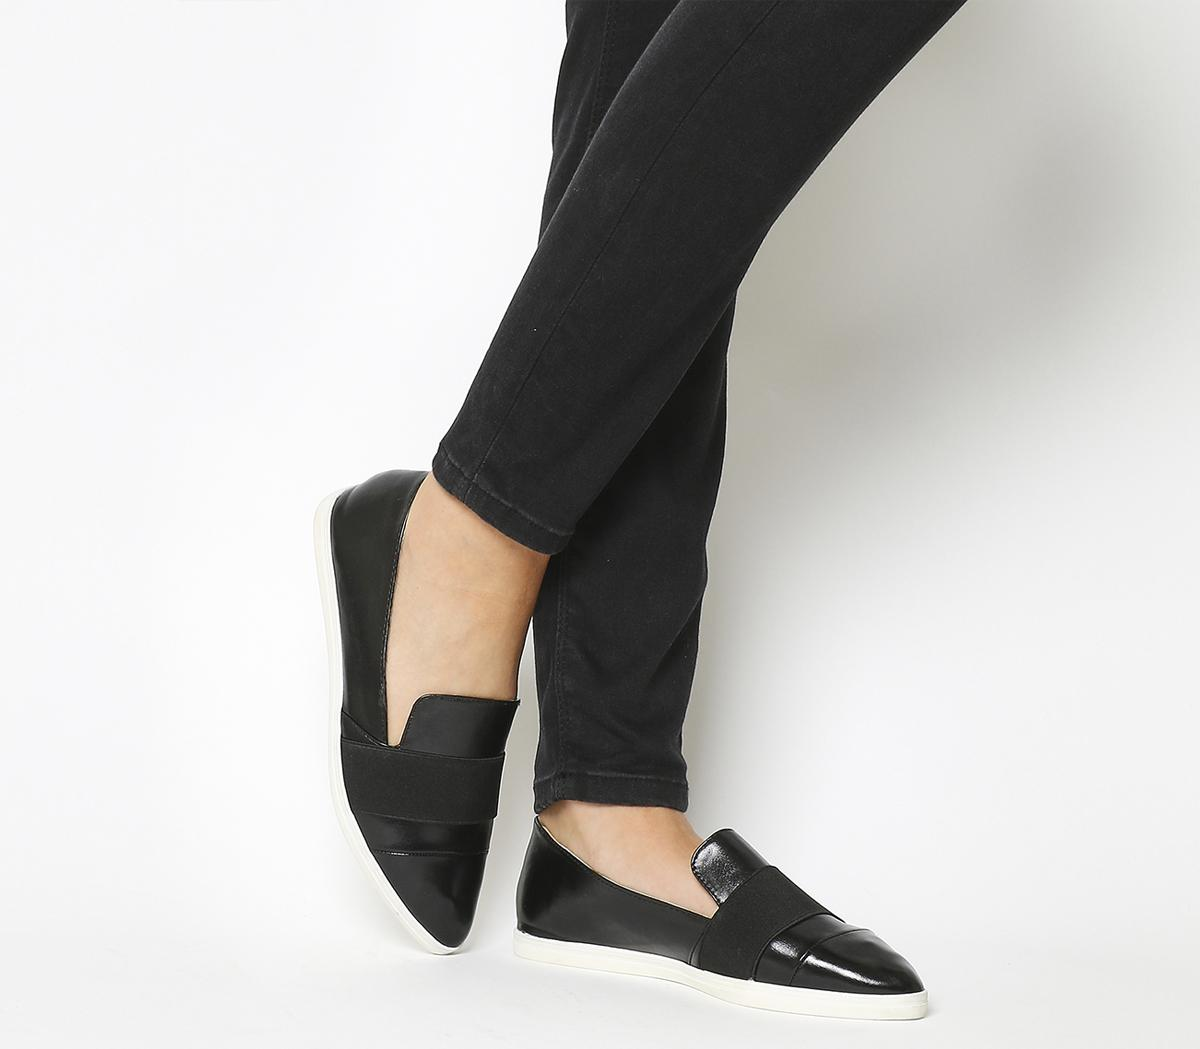 Office Fig Pointed Flat Pumps Black - Flats